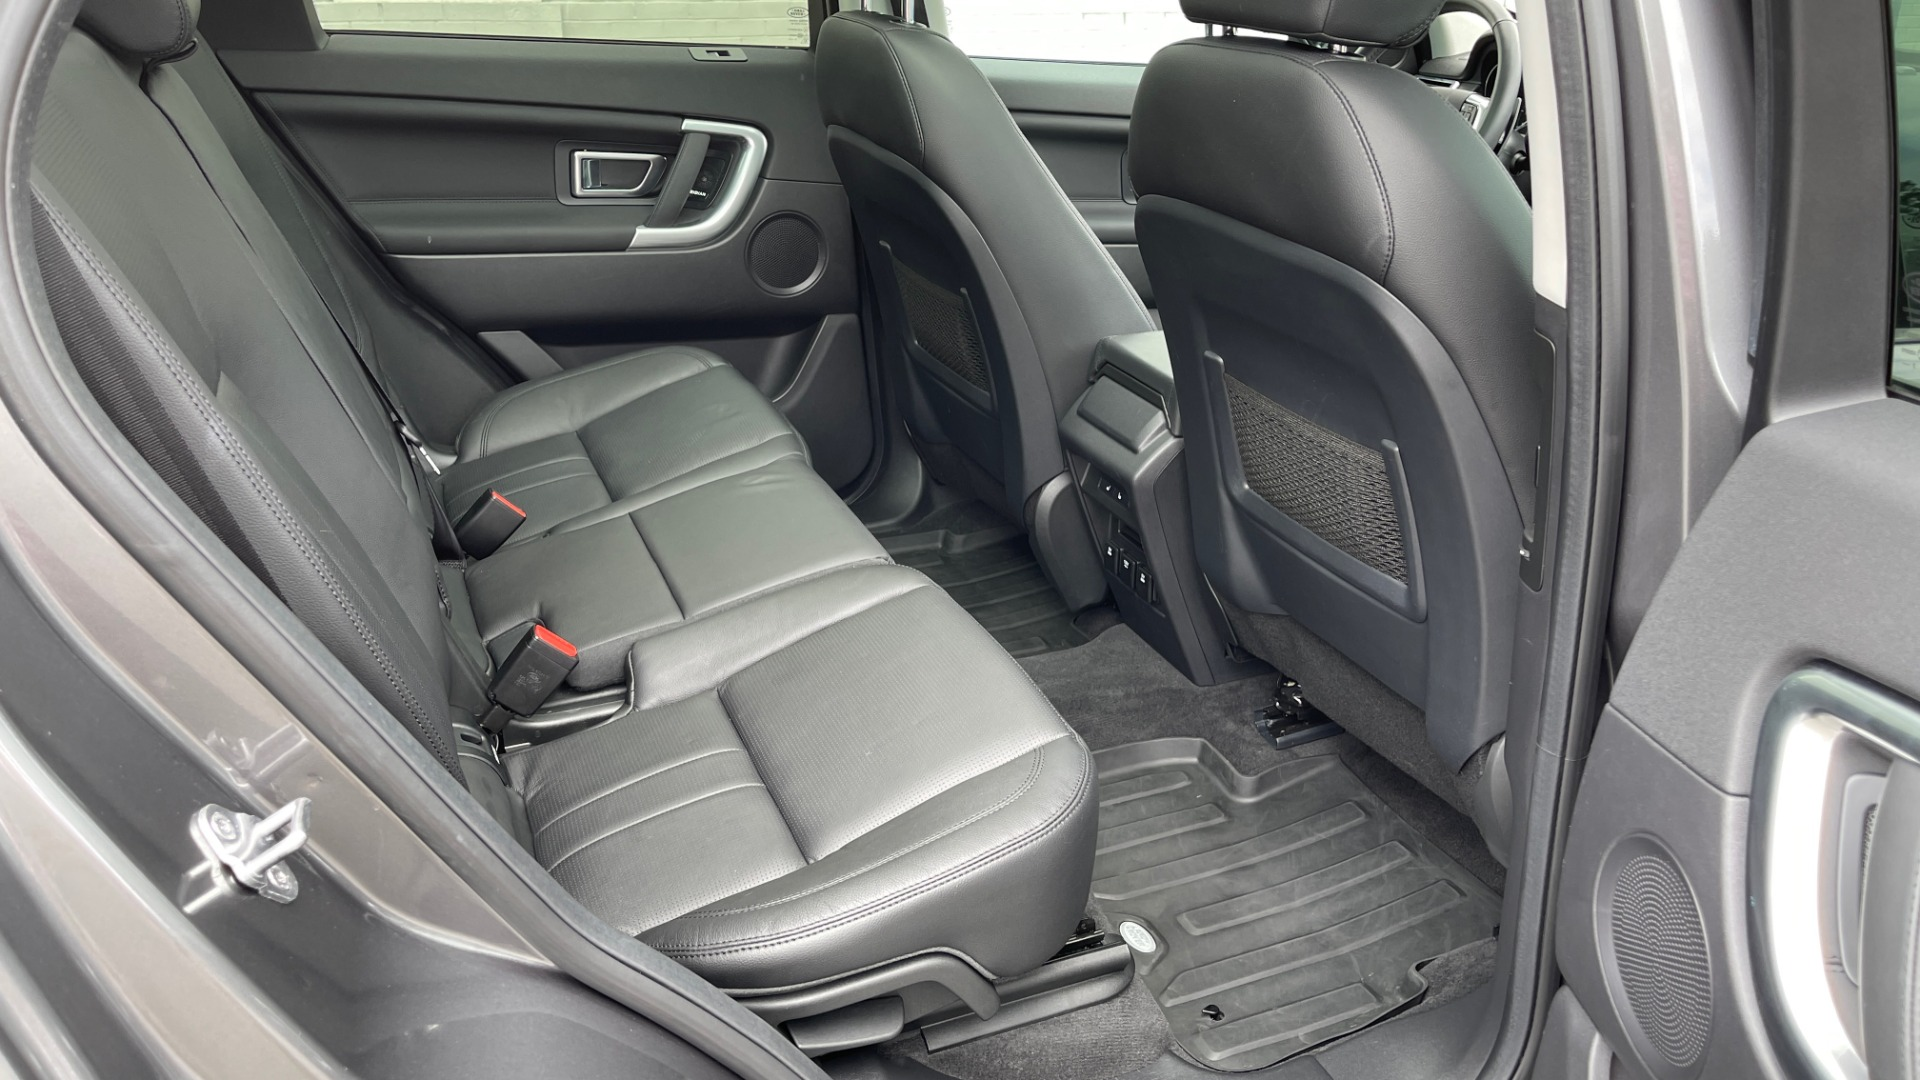 Used 2018 Land Rover DISCOVERY SPORT HSE 4WD / NAV / PANO-ROOF / MERIDIAN SND / HTD STS / LANE ASST / REARVIEW for sale $34,995 at Formula Imports in Charlotte NC 28227 65